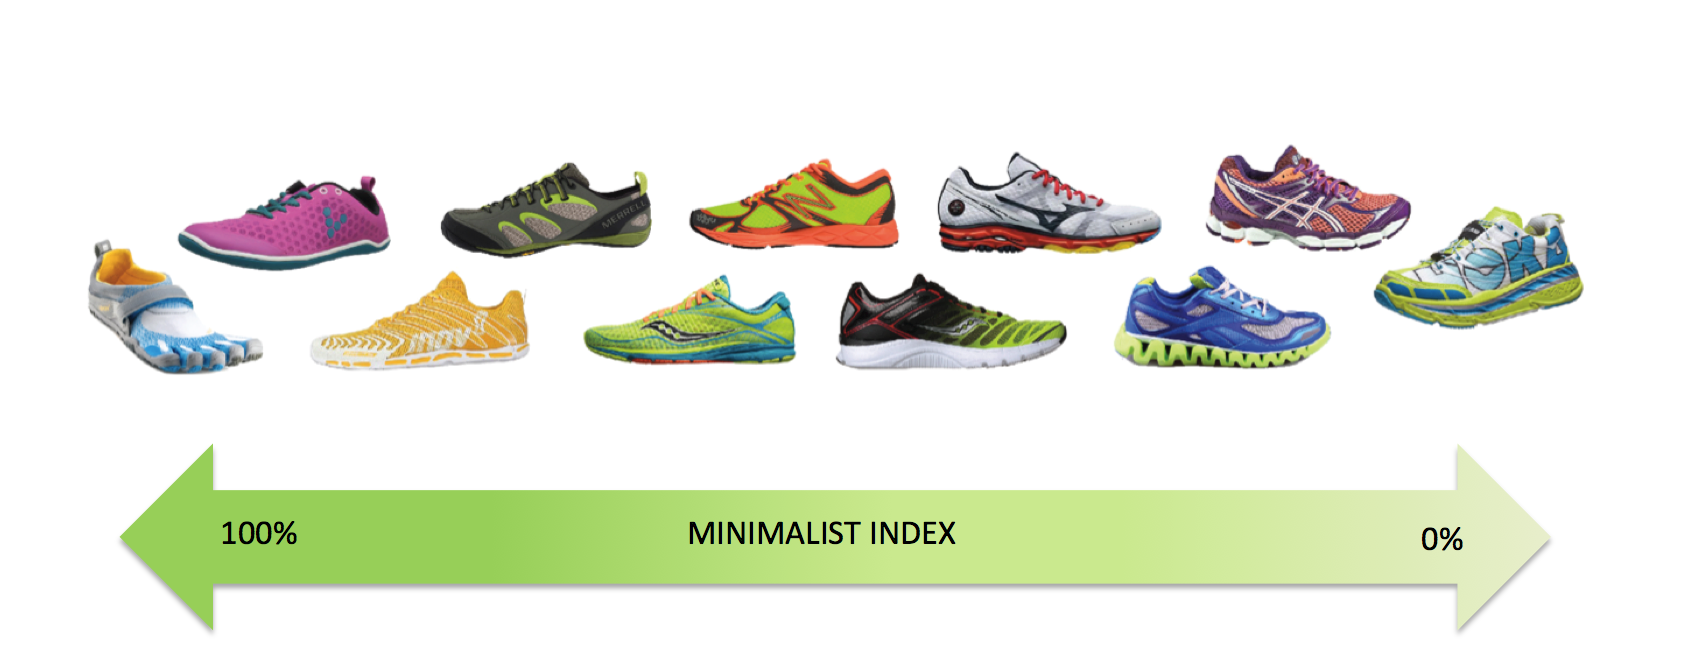 Minimalist Shoes Are Footwear Providing Minimal Interference With The Natural Movement Of Foot Due To Its High Flexibility Low Heel Toe Drop